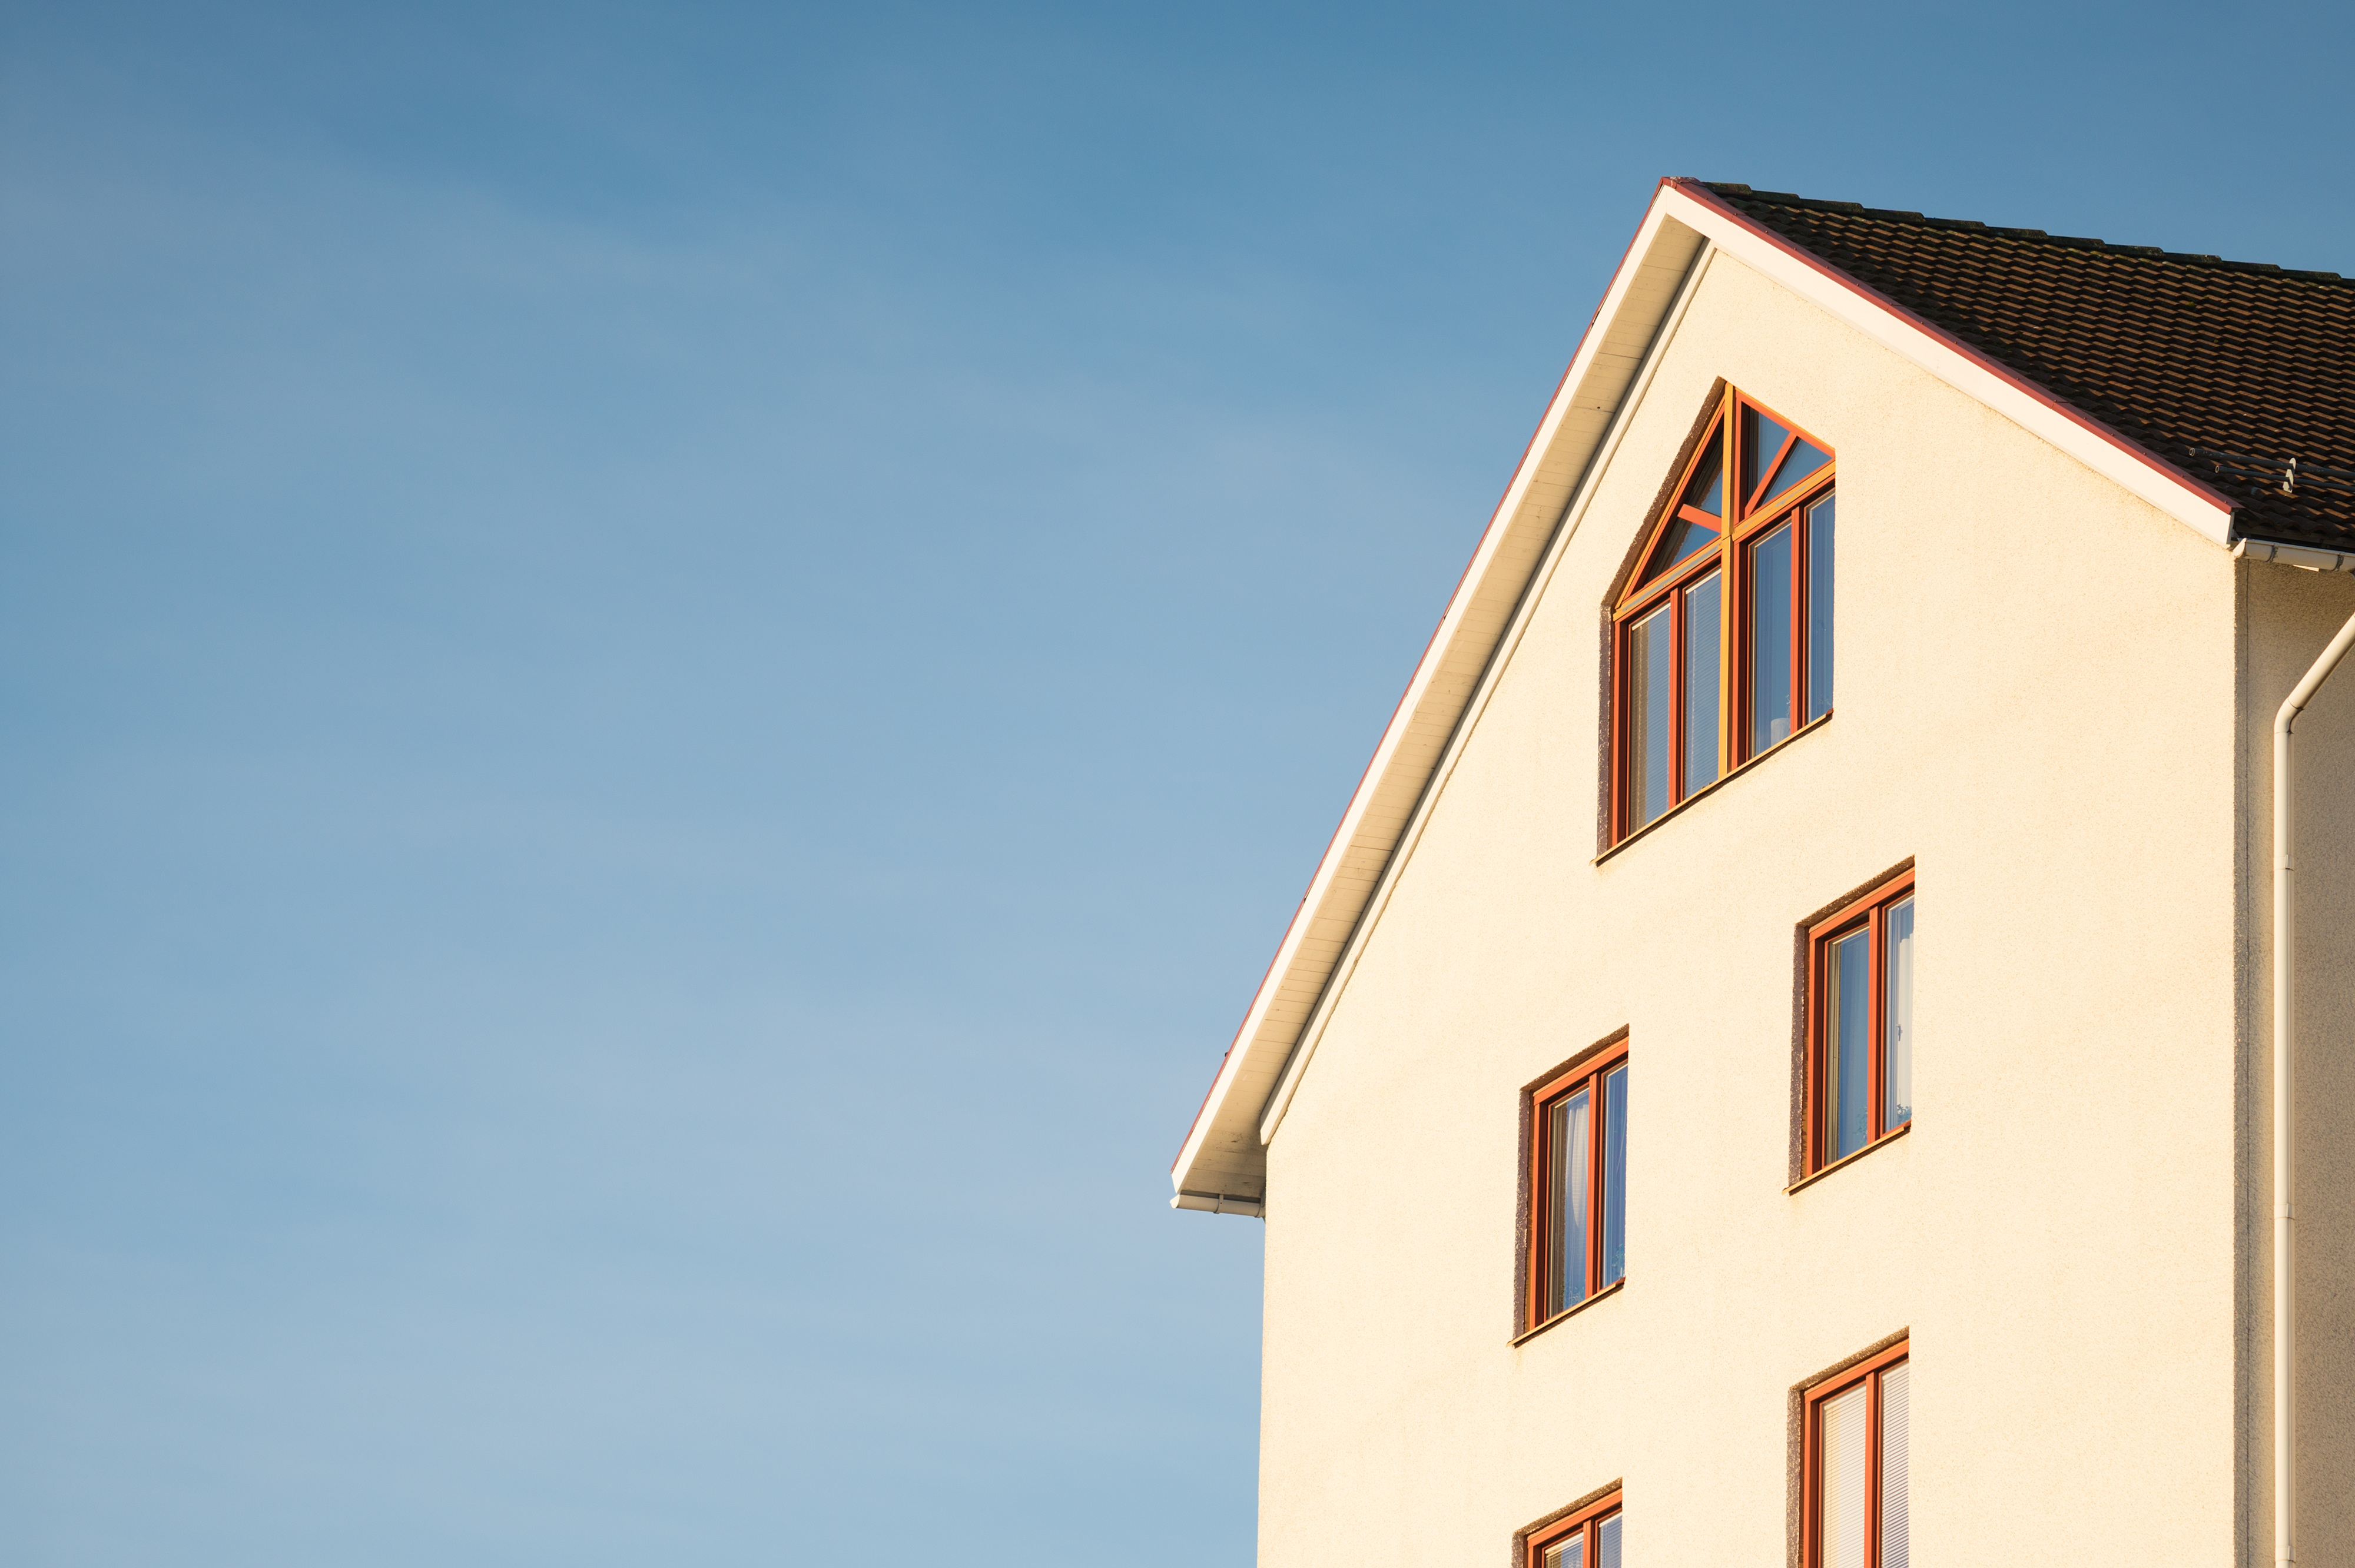 Architecture modern houses crop details blue sky stock photo for Blue modern house